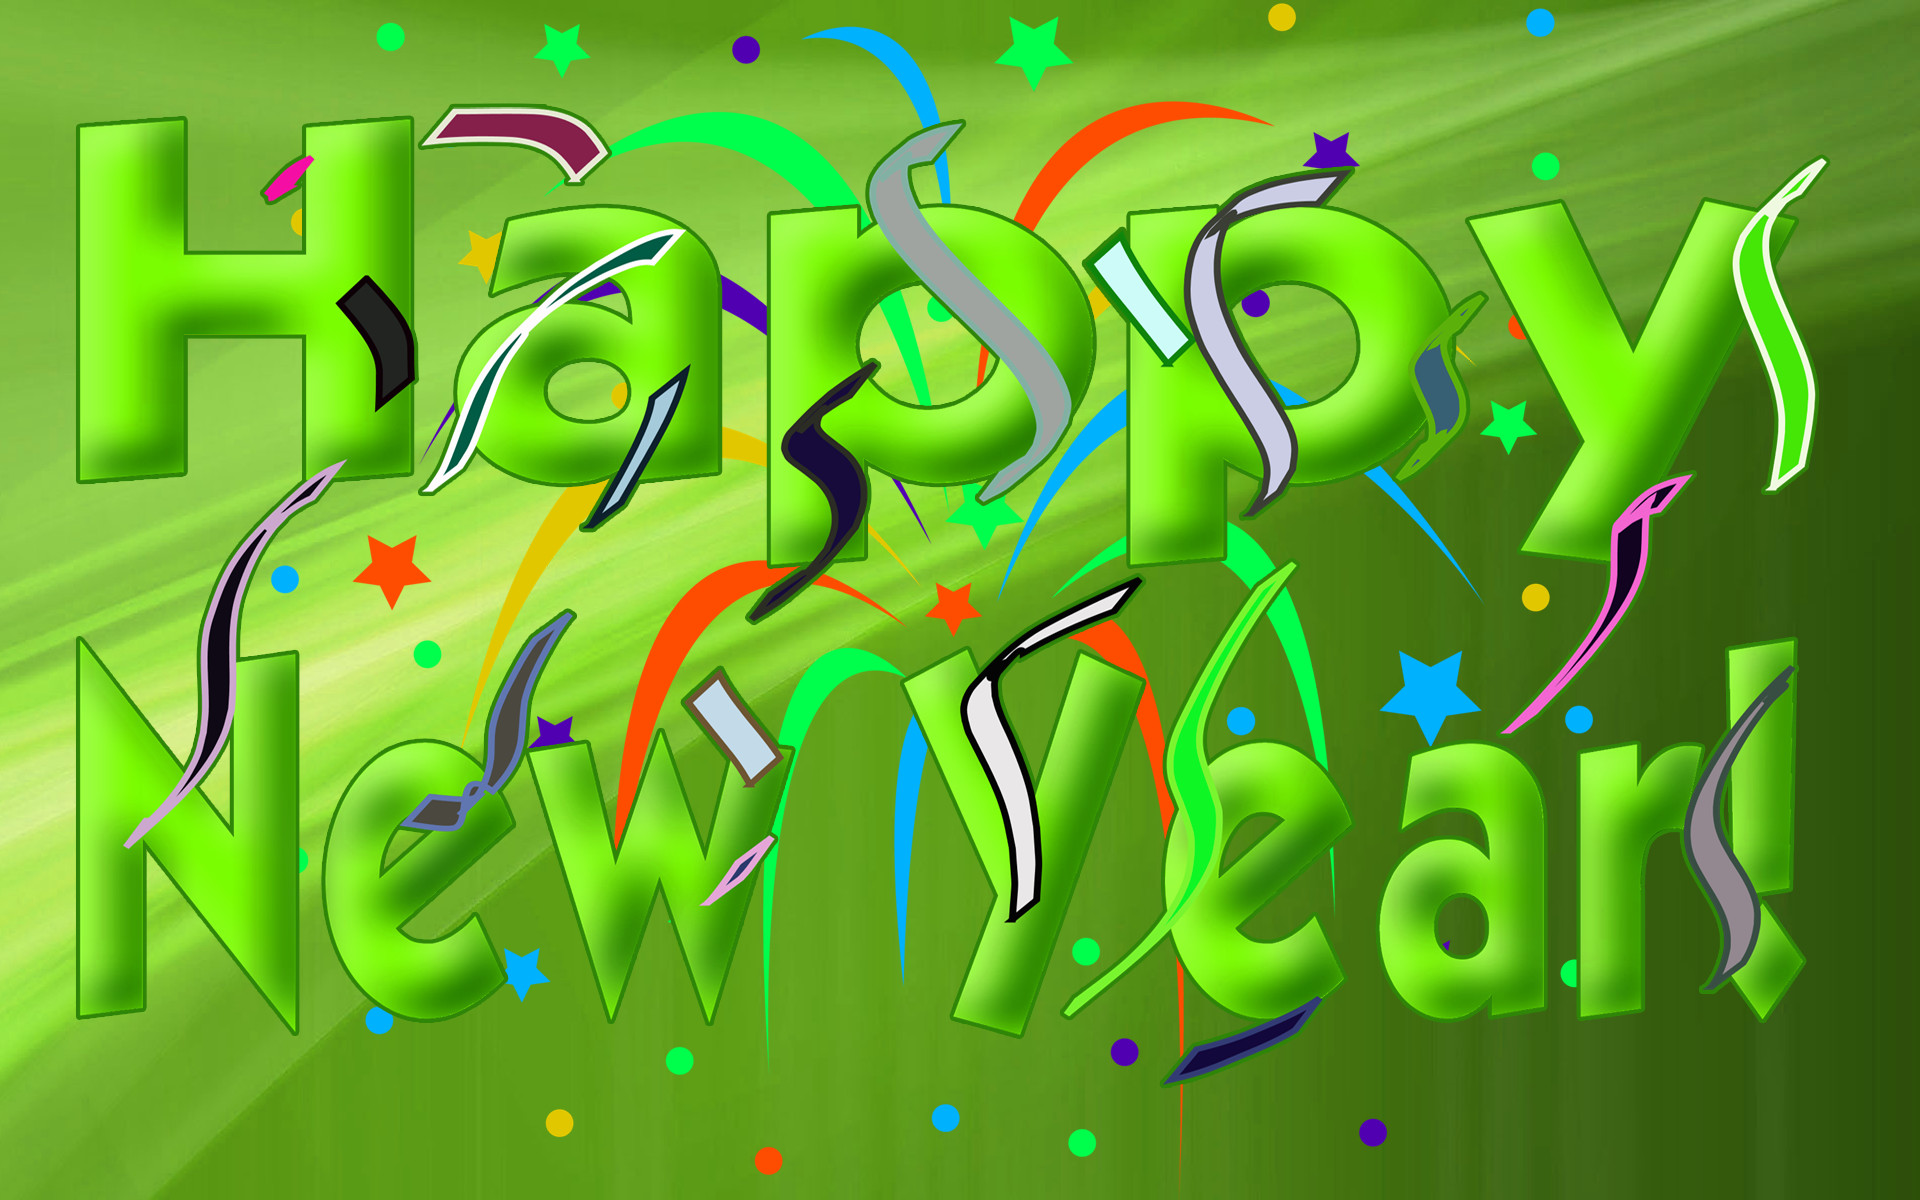 Celebrate New Year with Happy New Year 2017 Wallpapers – Happy New Year 2017  Images Wishes